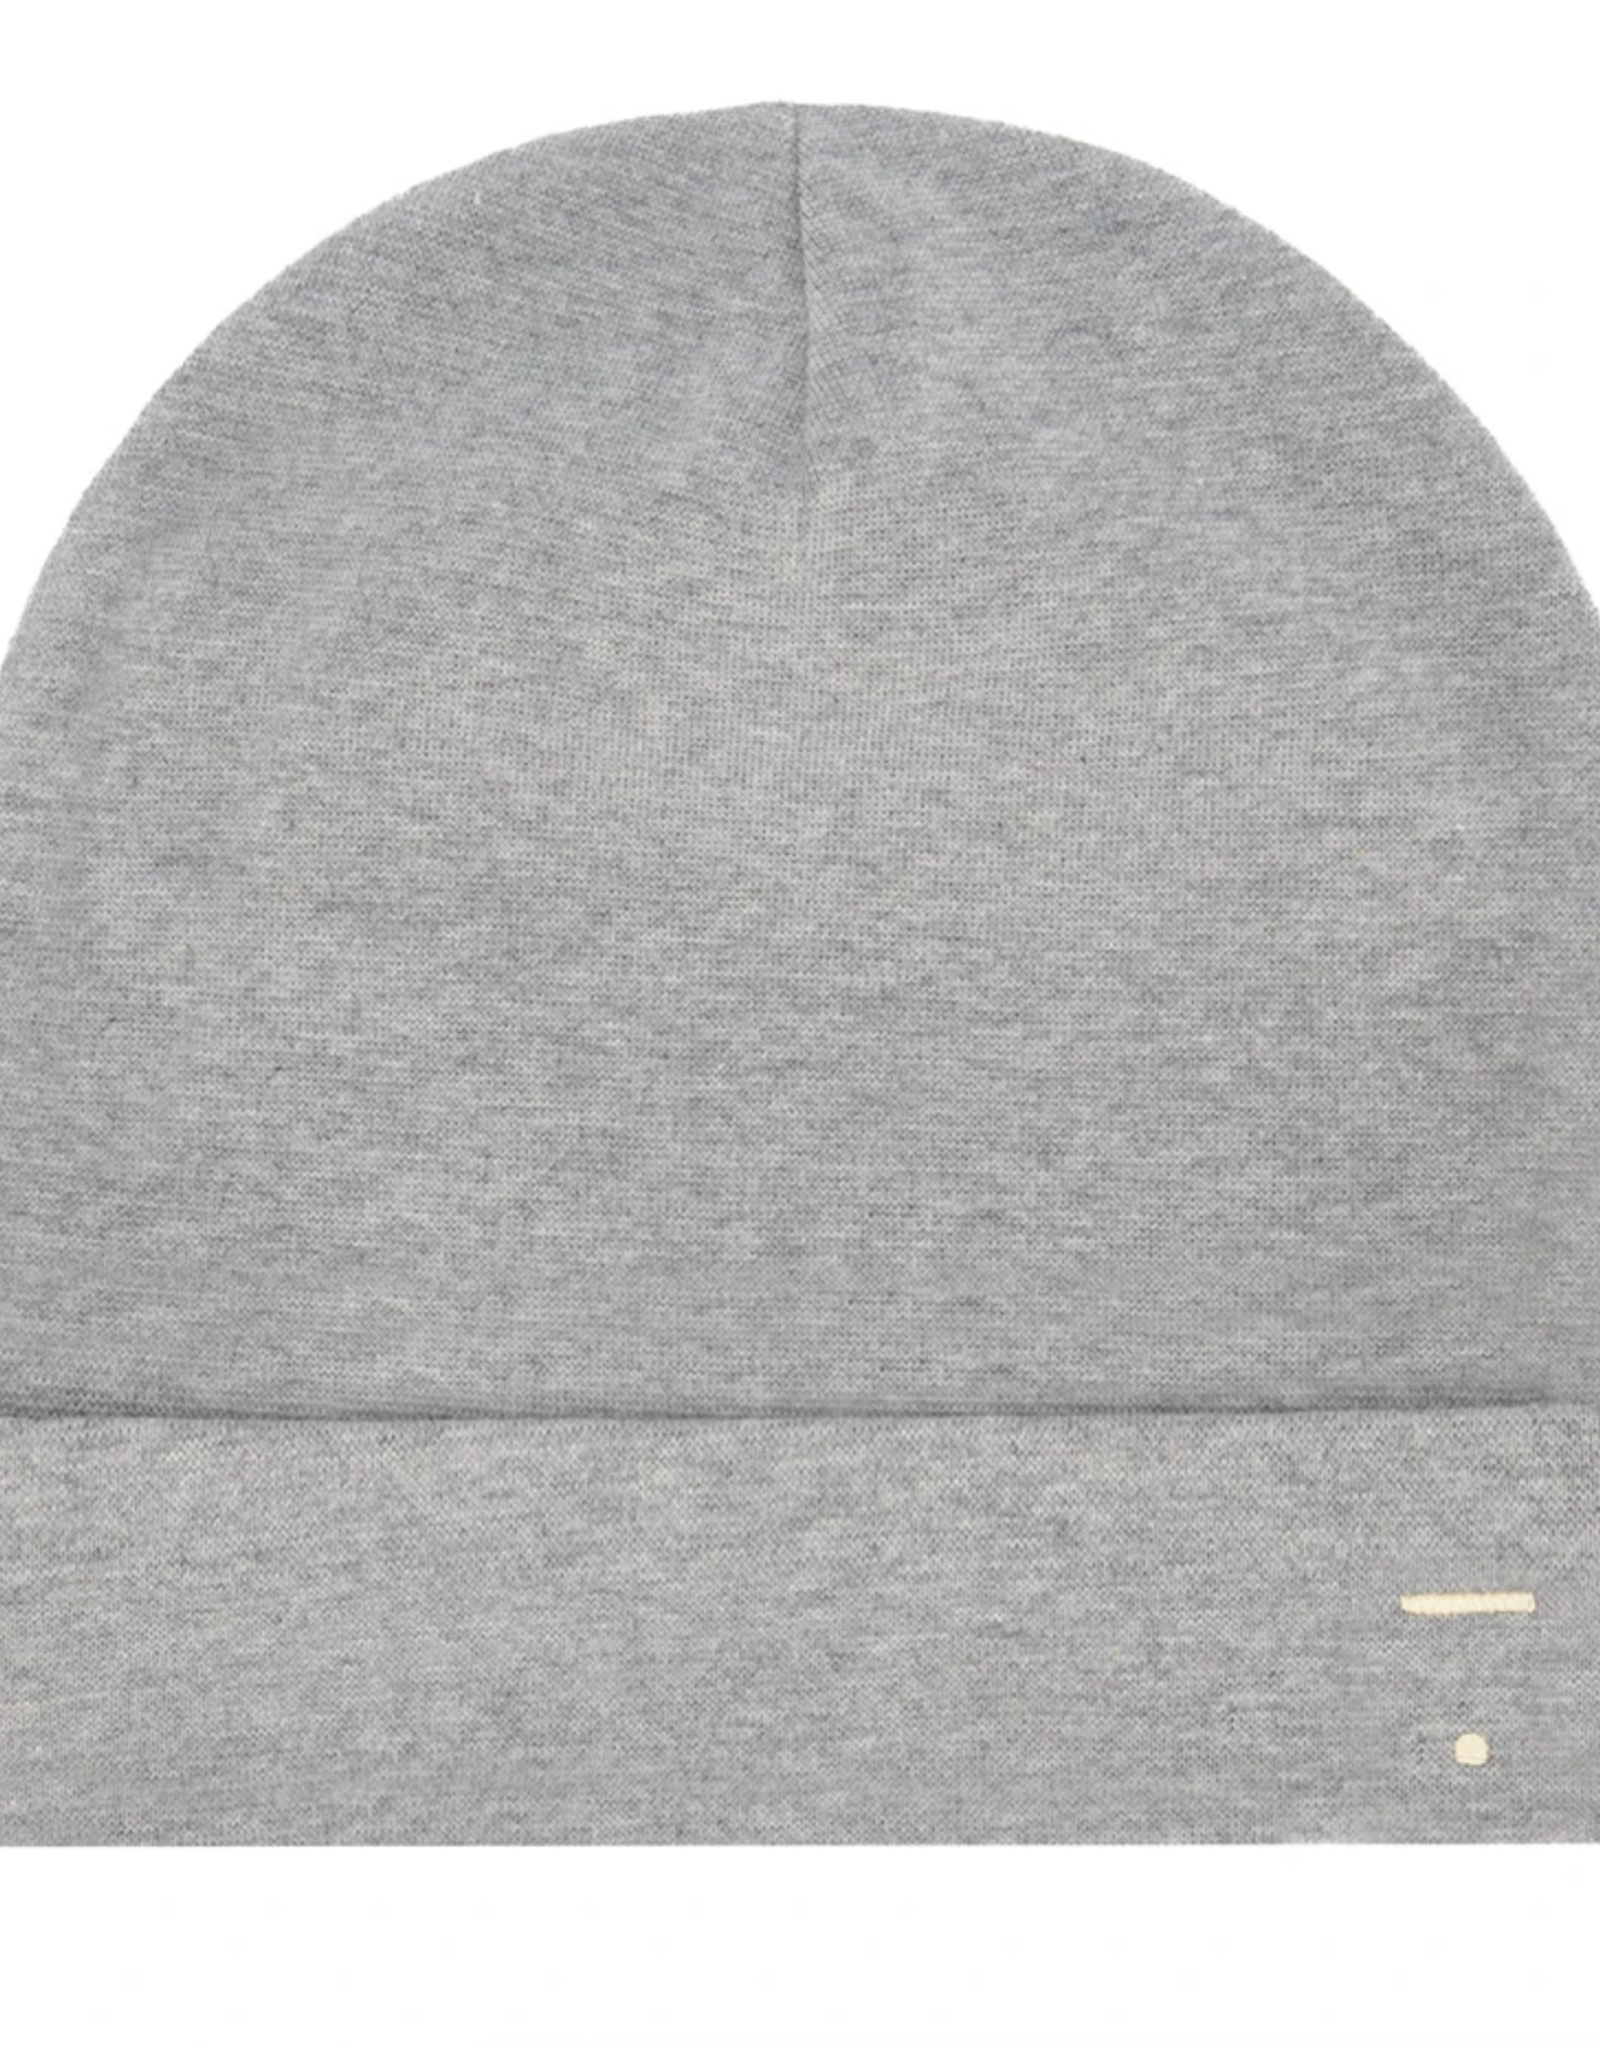 Gray Label Beanie